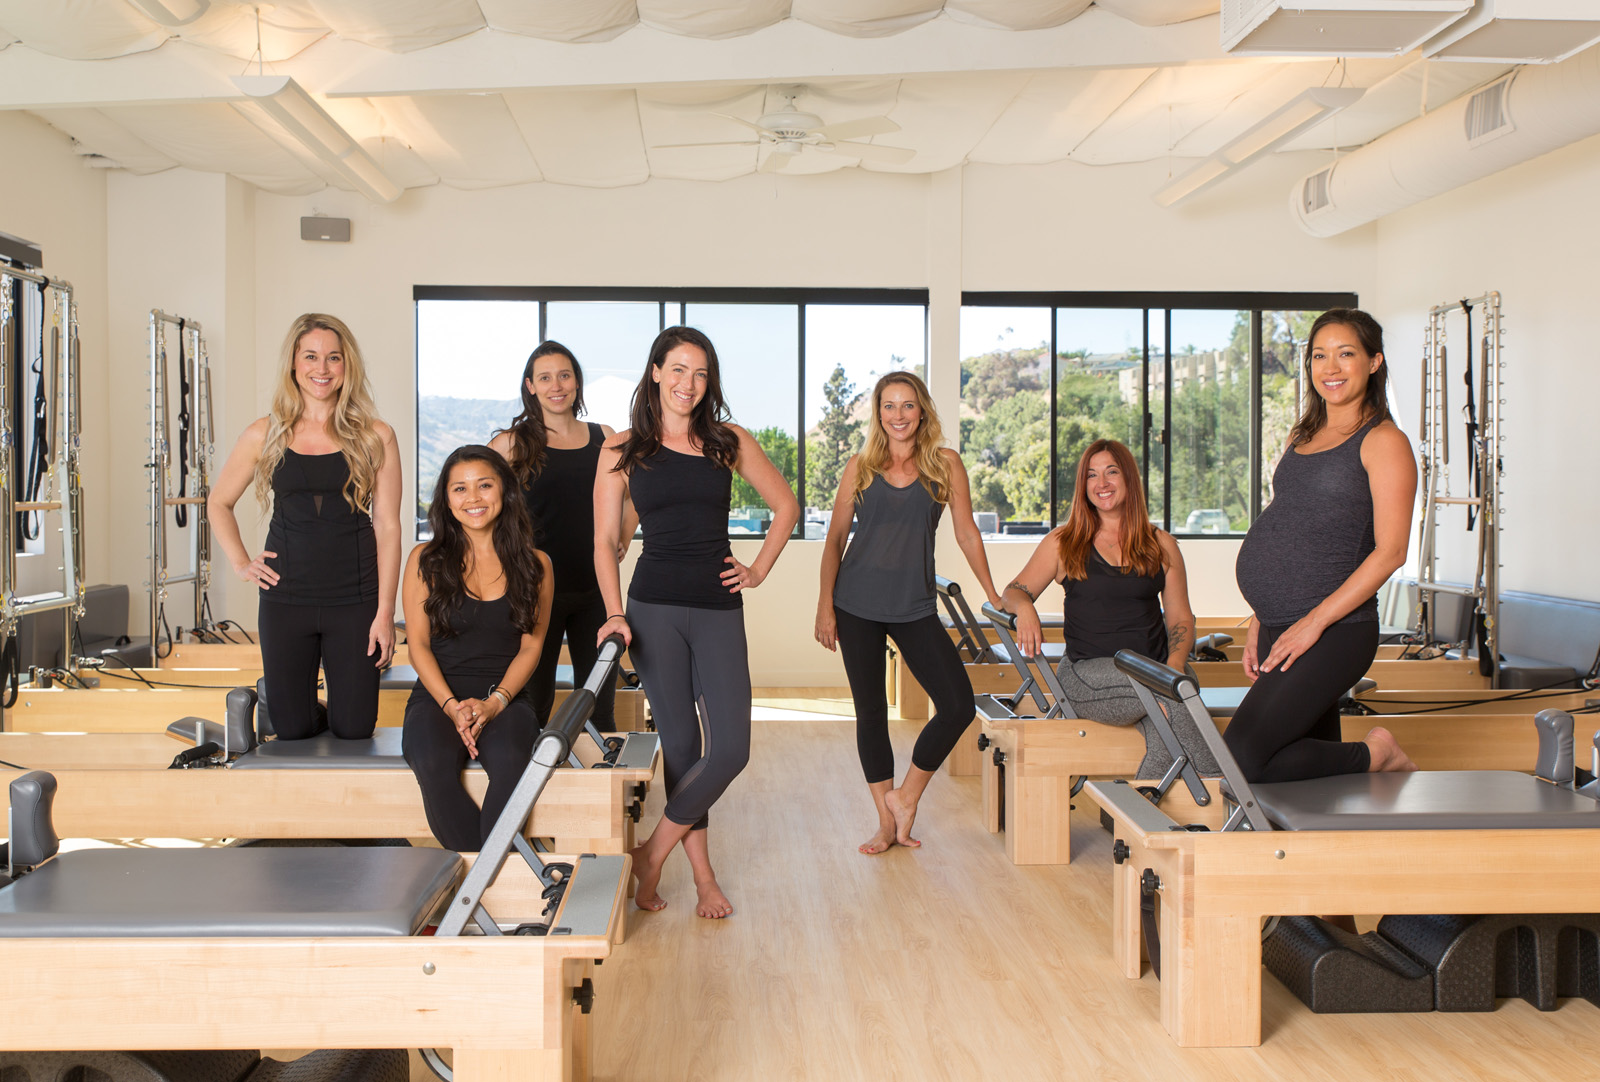 Studio Flo Pilates